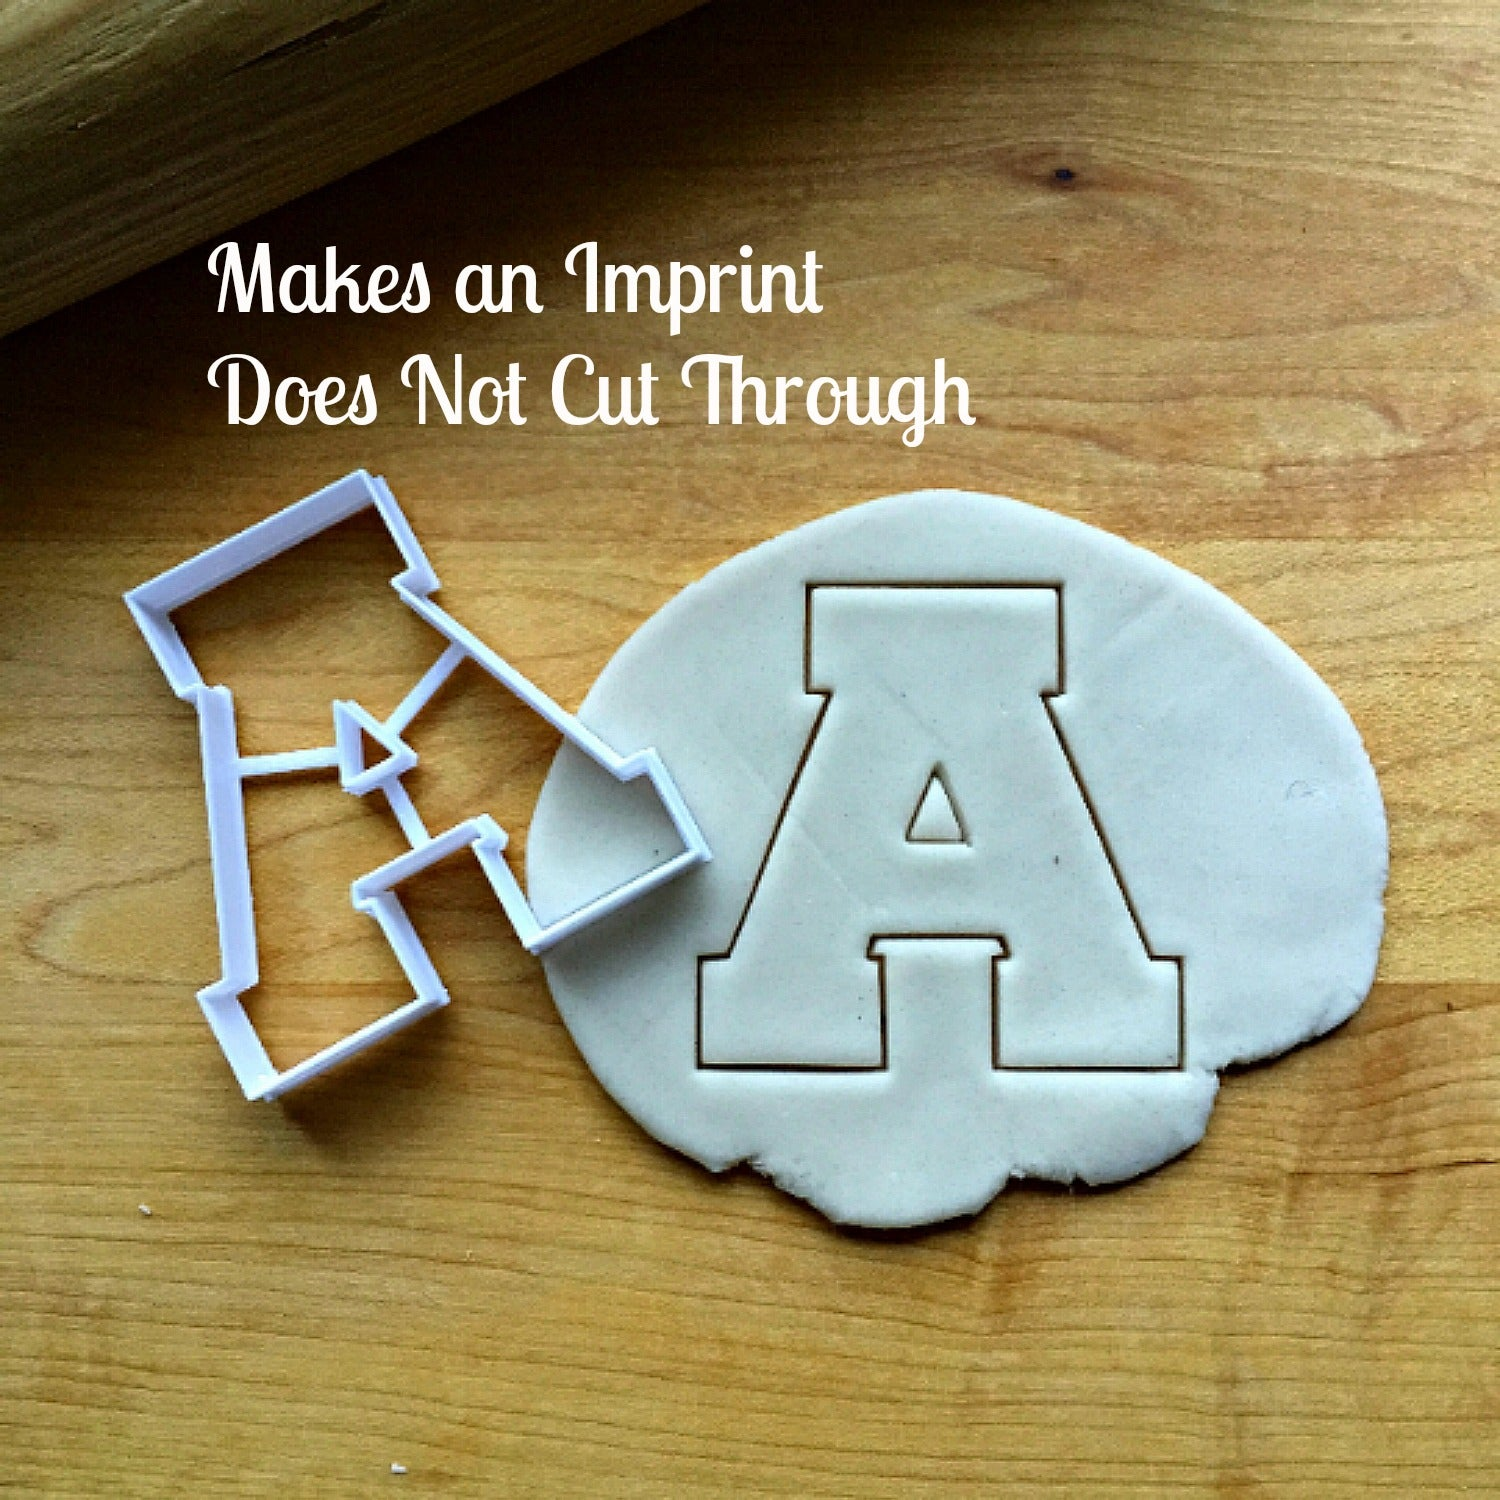 Varsity Letter A Cookie Cutter/Dishwasher Safe